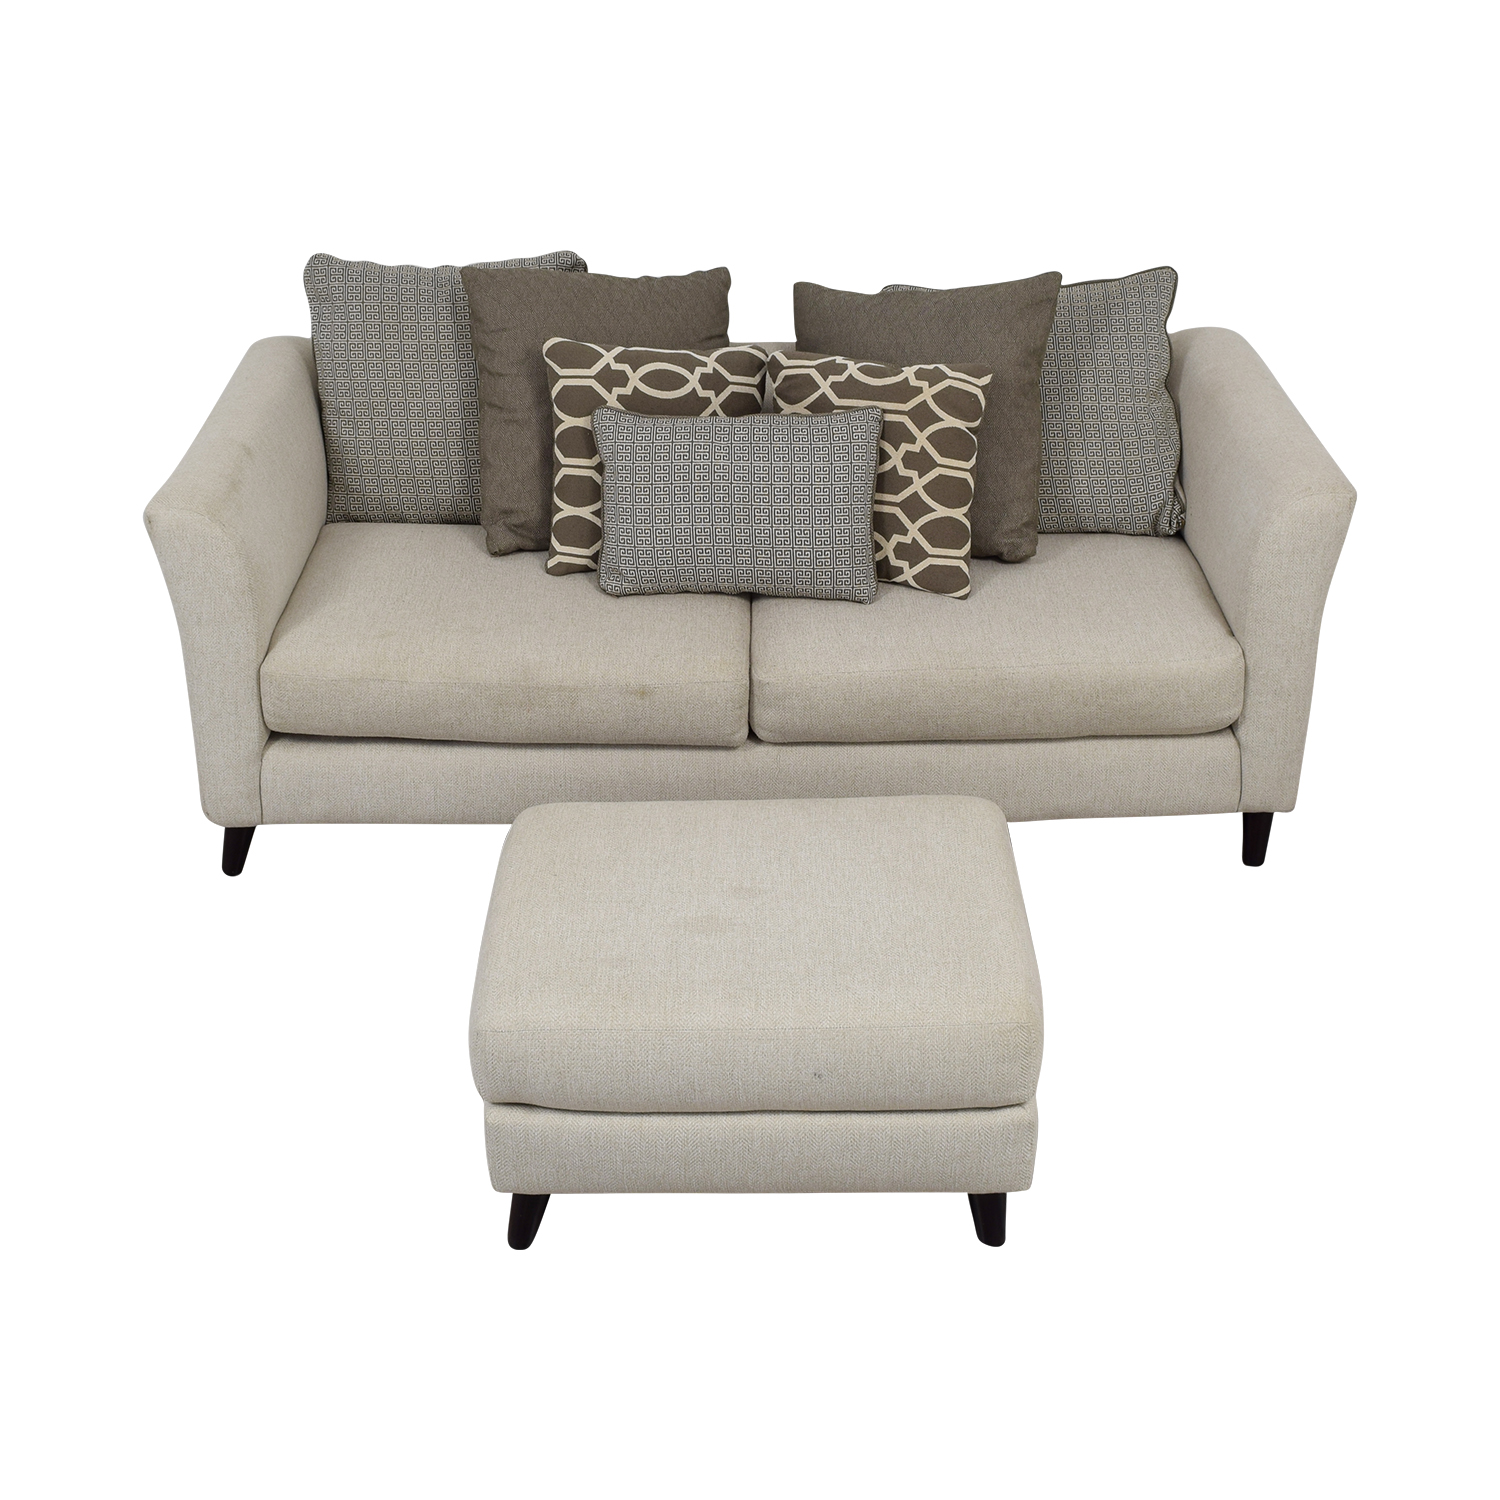 shop Raymour & Flanigan Raymour & Flanigan Kinsella White Two-Cushion Couch and Ottoman online